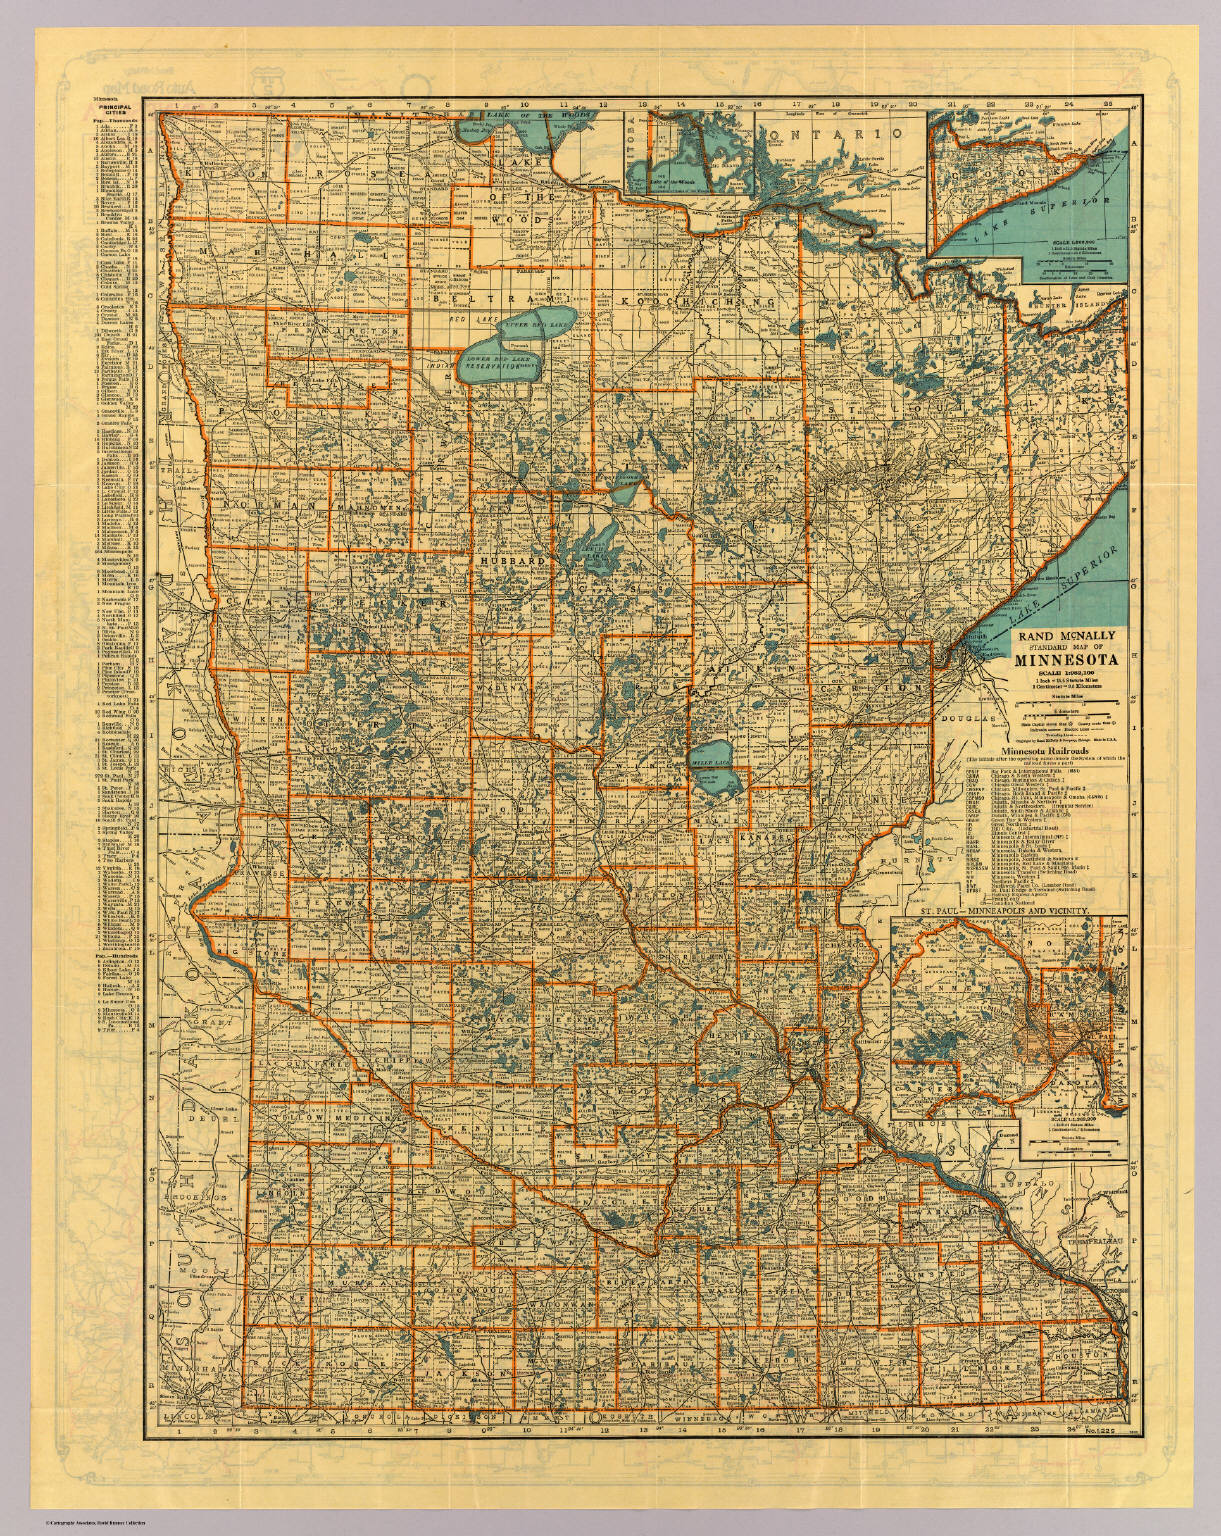 Minnesota standard map - David Rumsey Historical Map Collection